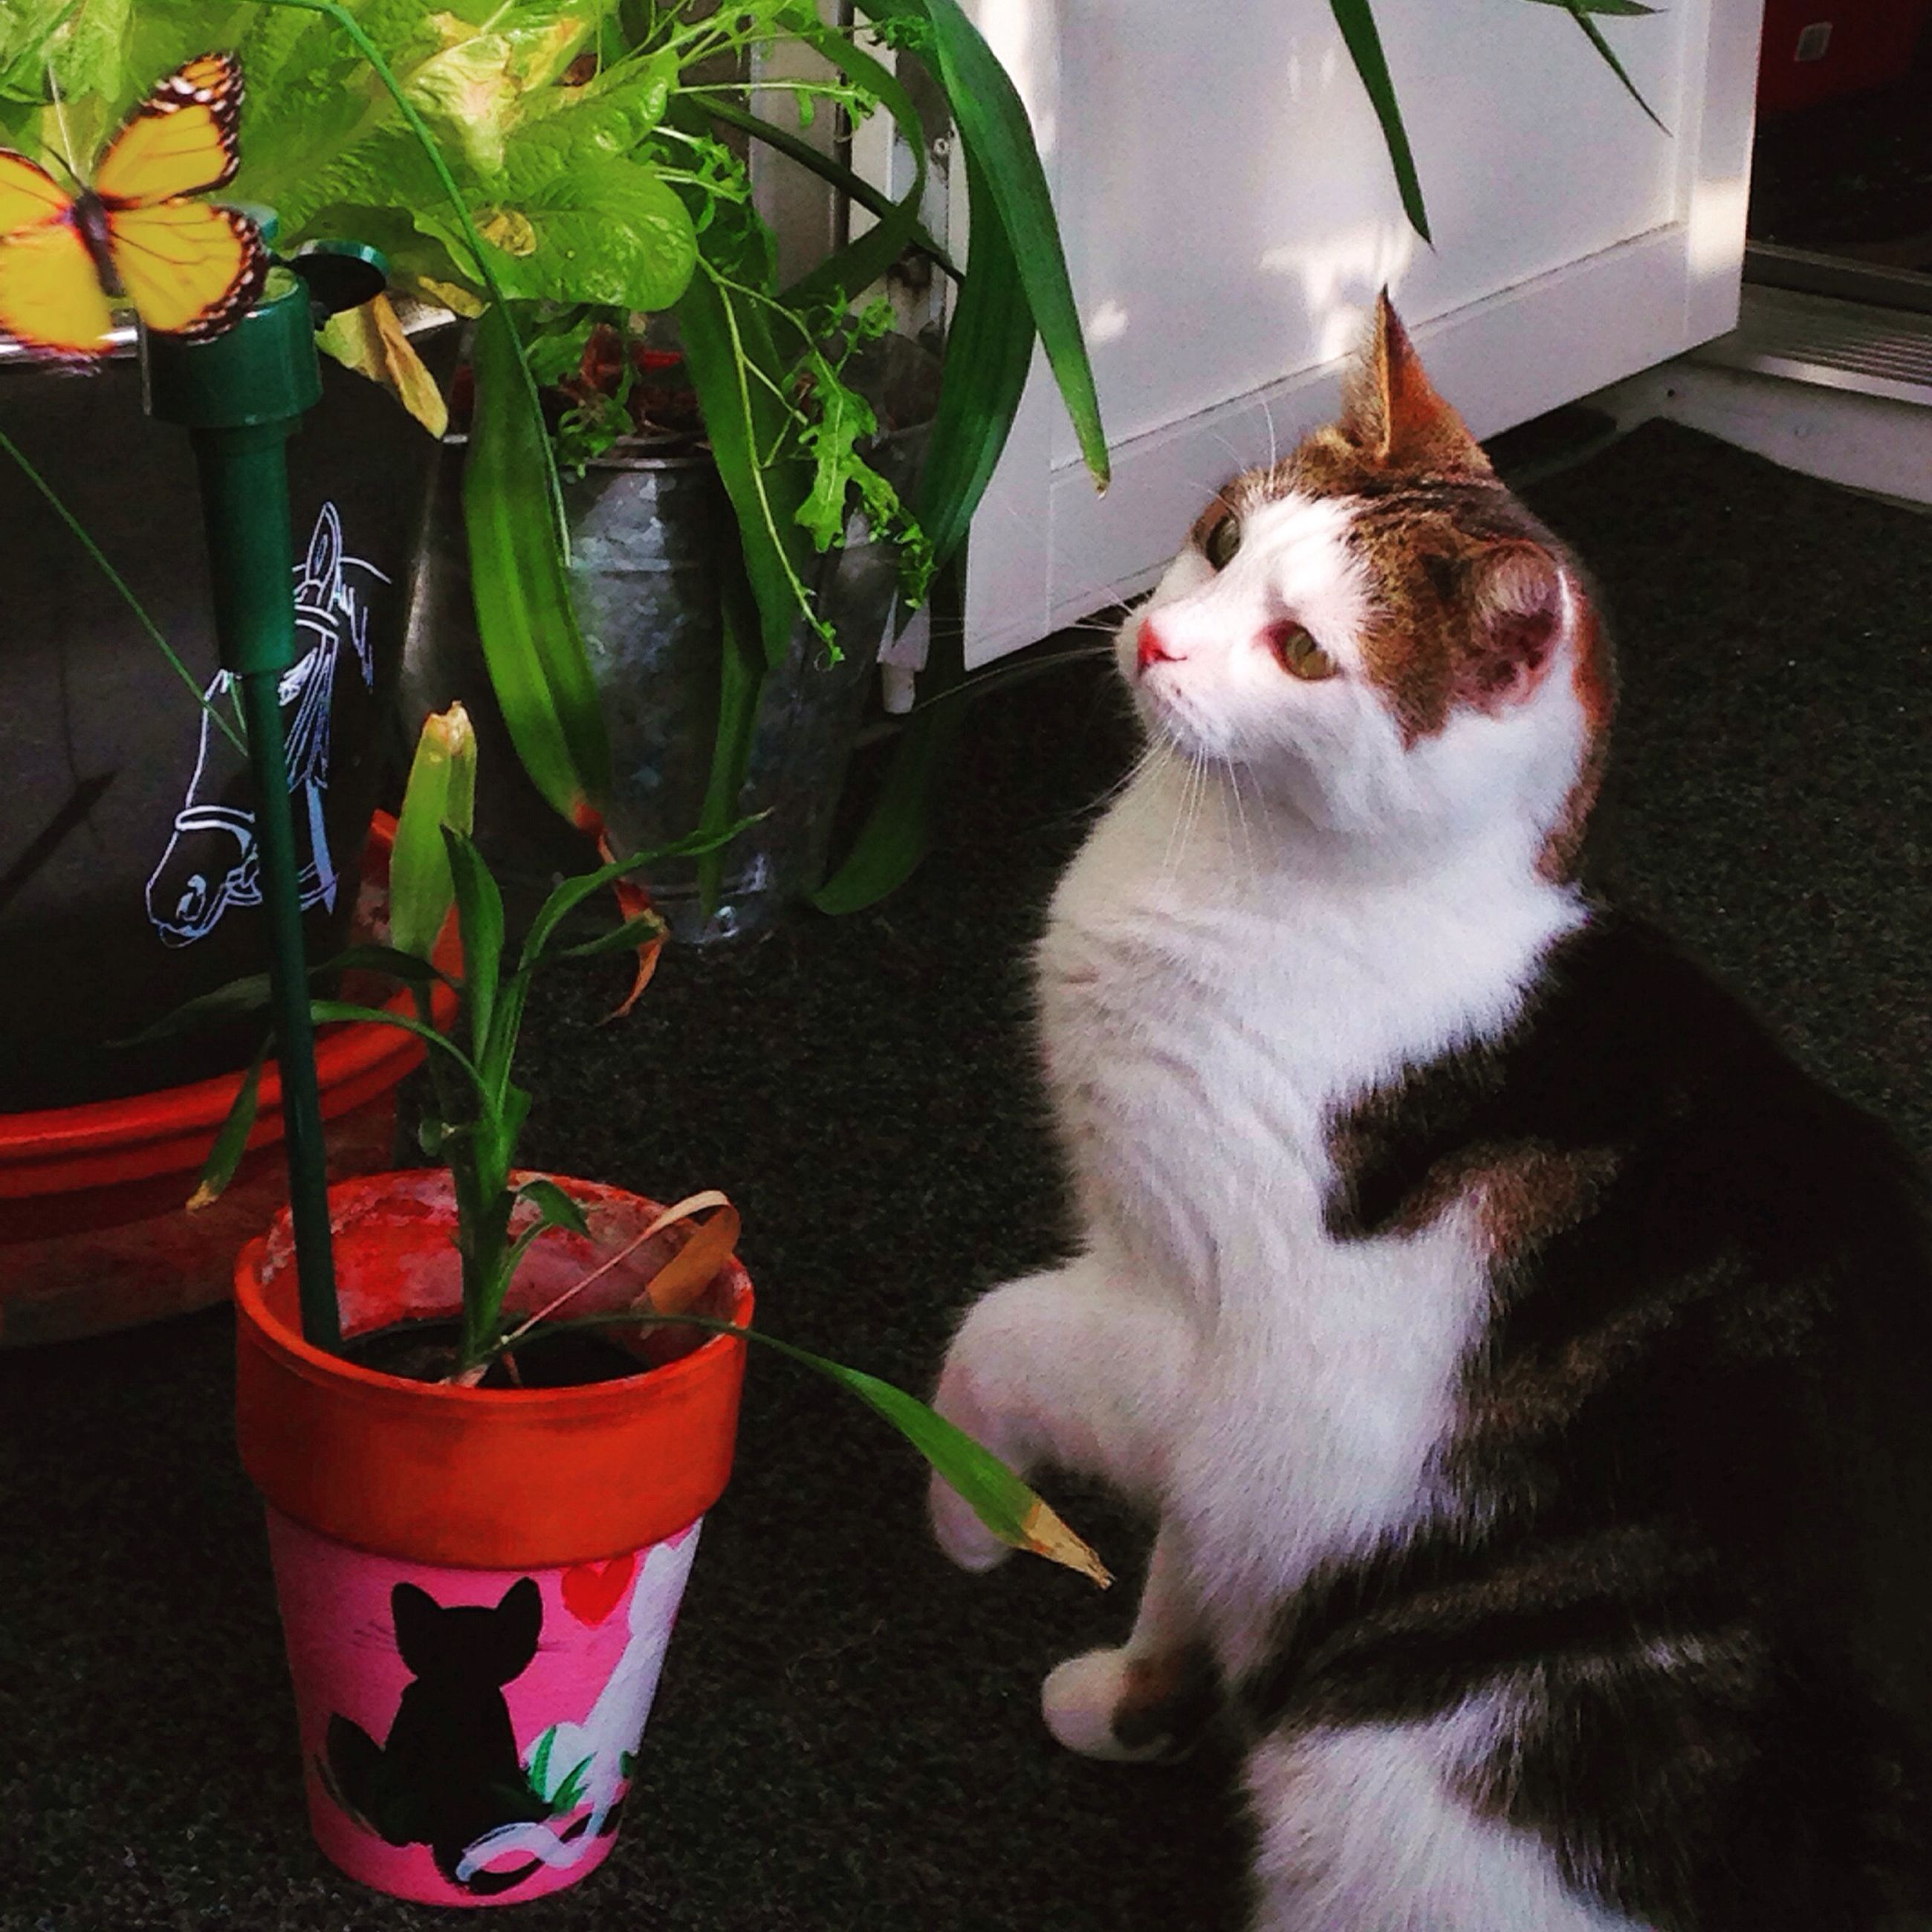 domestic cat, cat, pets, domestic animals, feline, one animal, animal themes, mammal, whisker, indoors, potted plant, sitting, relaxation, plant, home interior, front or back yard, close-up, no people, house, lying down